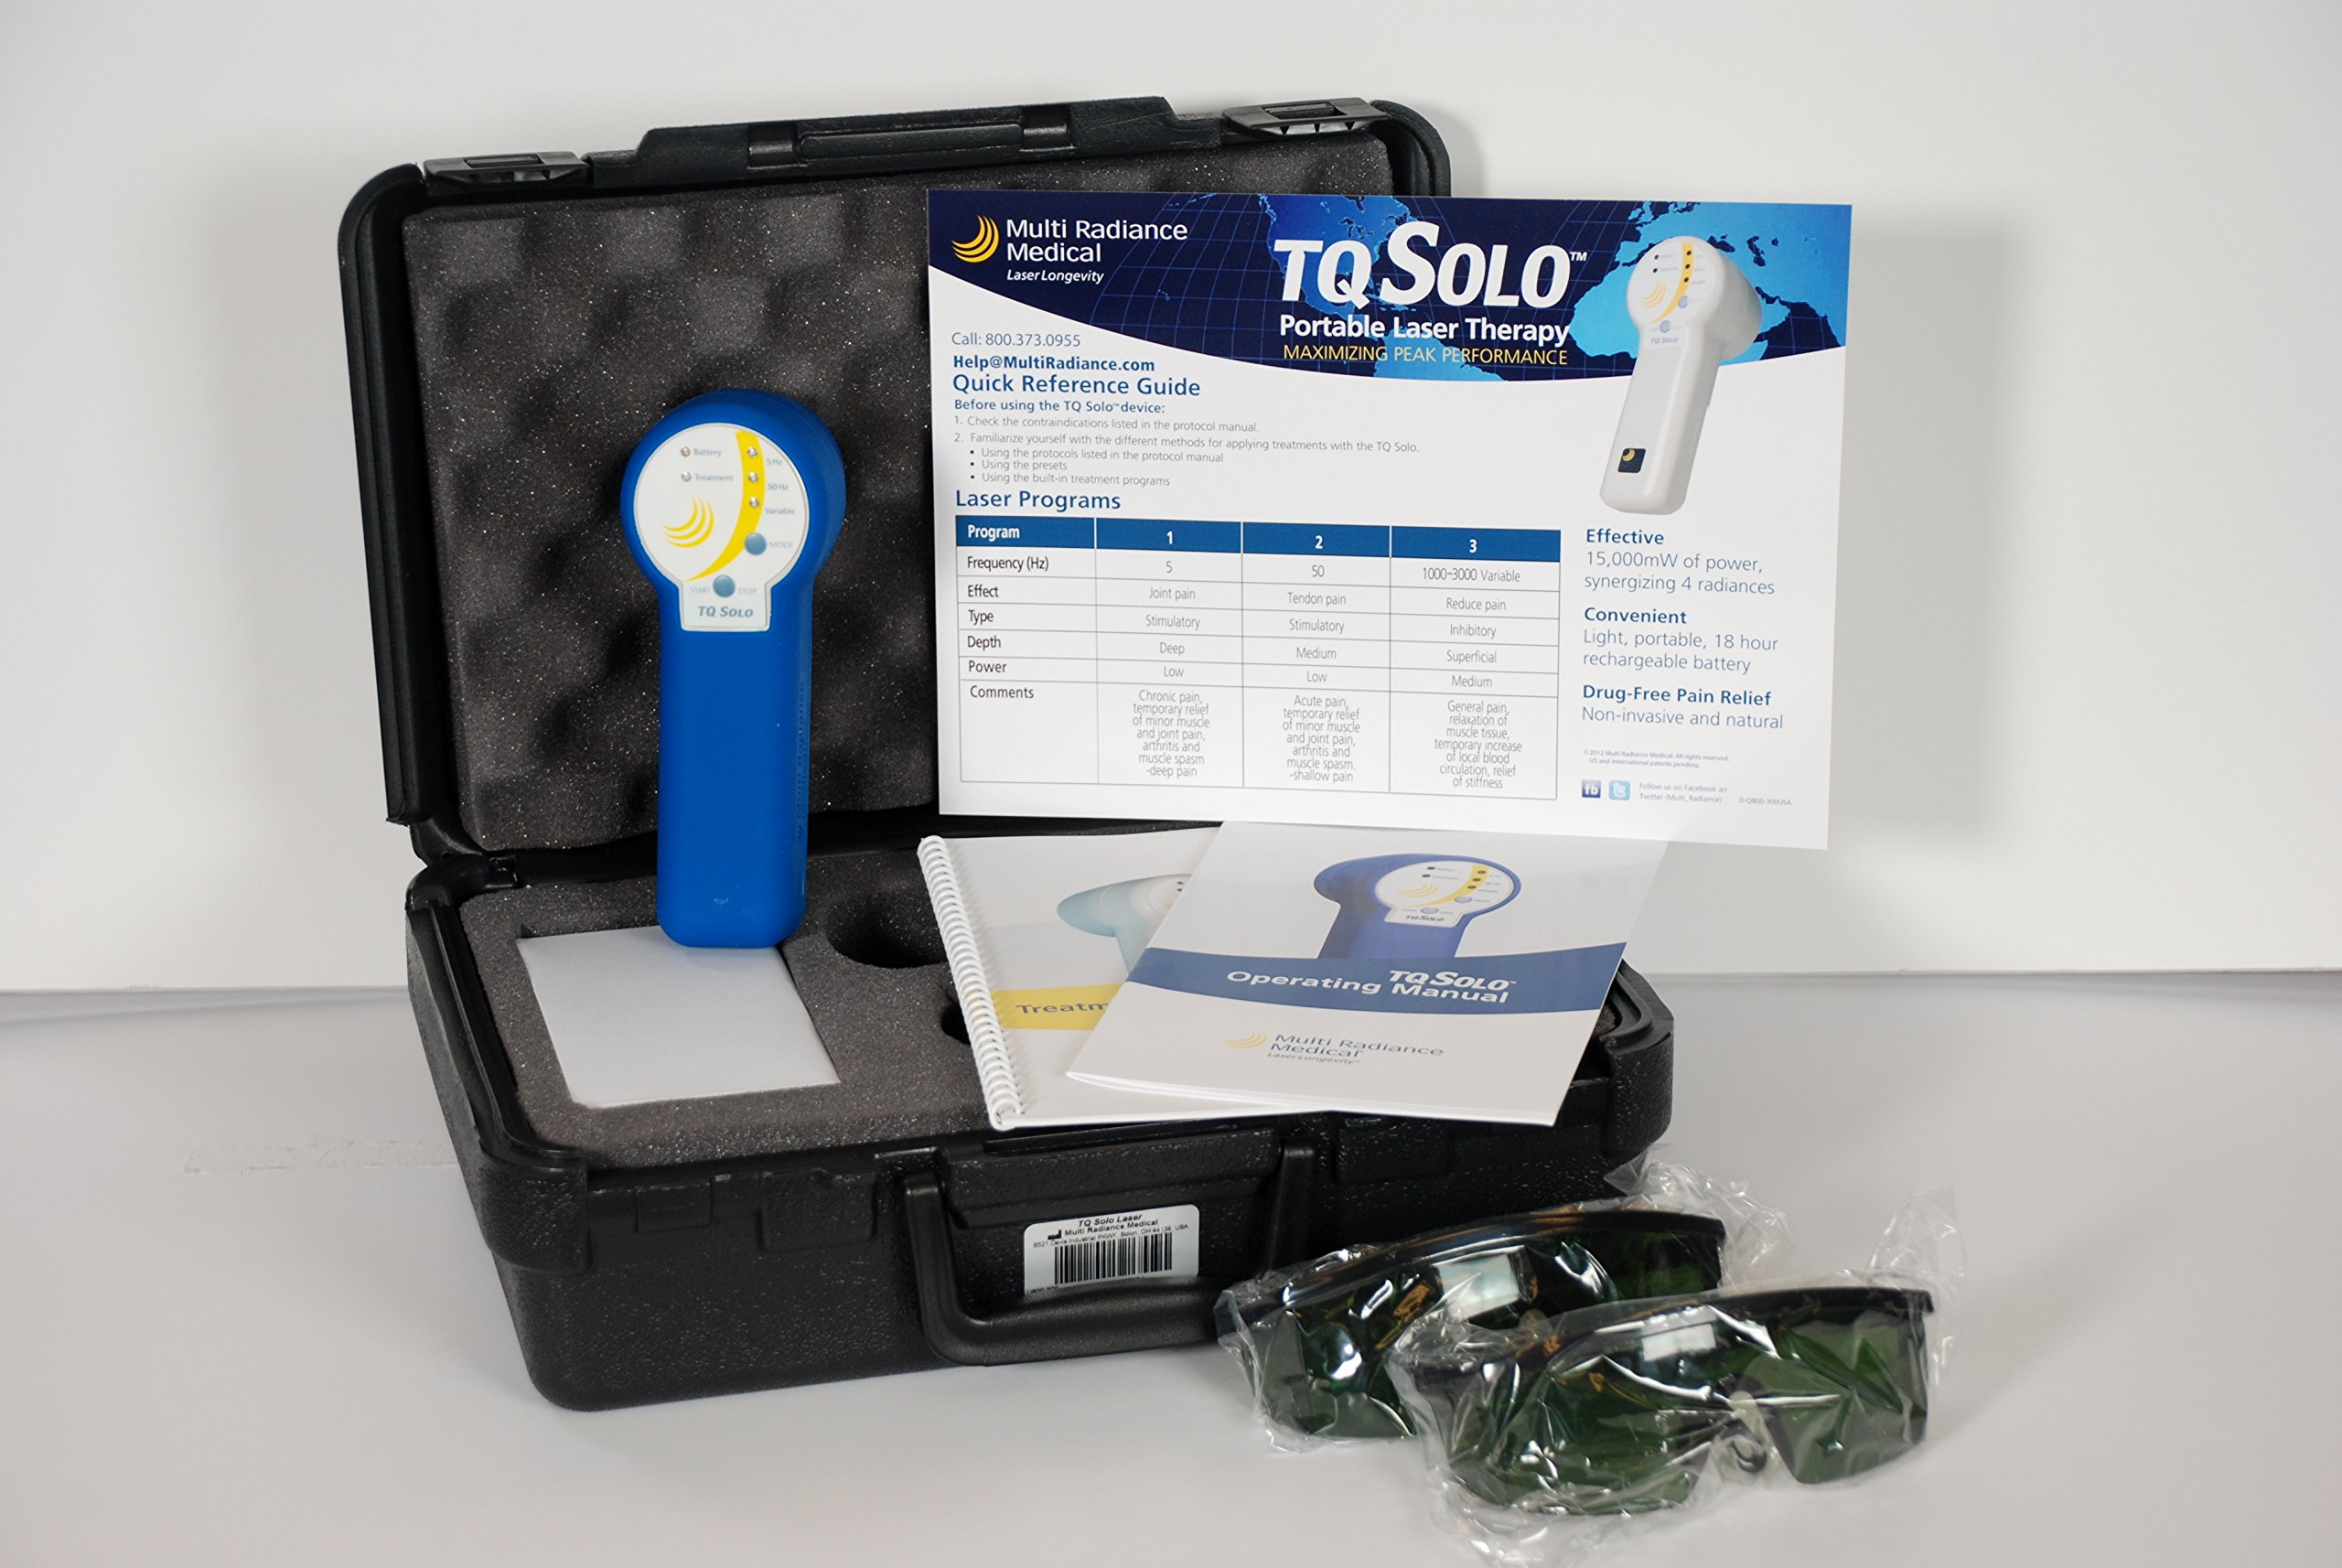 TQ Solo Portable Super Pulsed Laser Therapy - 3 wavelengths, 905nm Super Pulsed Laser, 875nm Infrared Broadband, 640nm Red - 3 pre-programmed modes for fast and easy pain relief anywhere, anytime